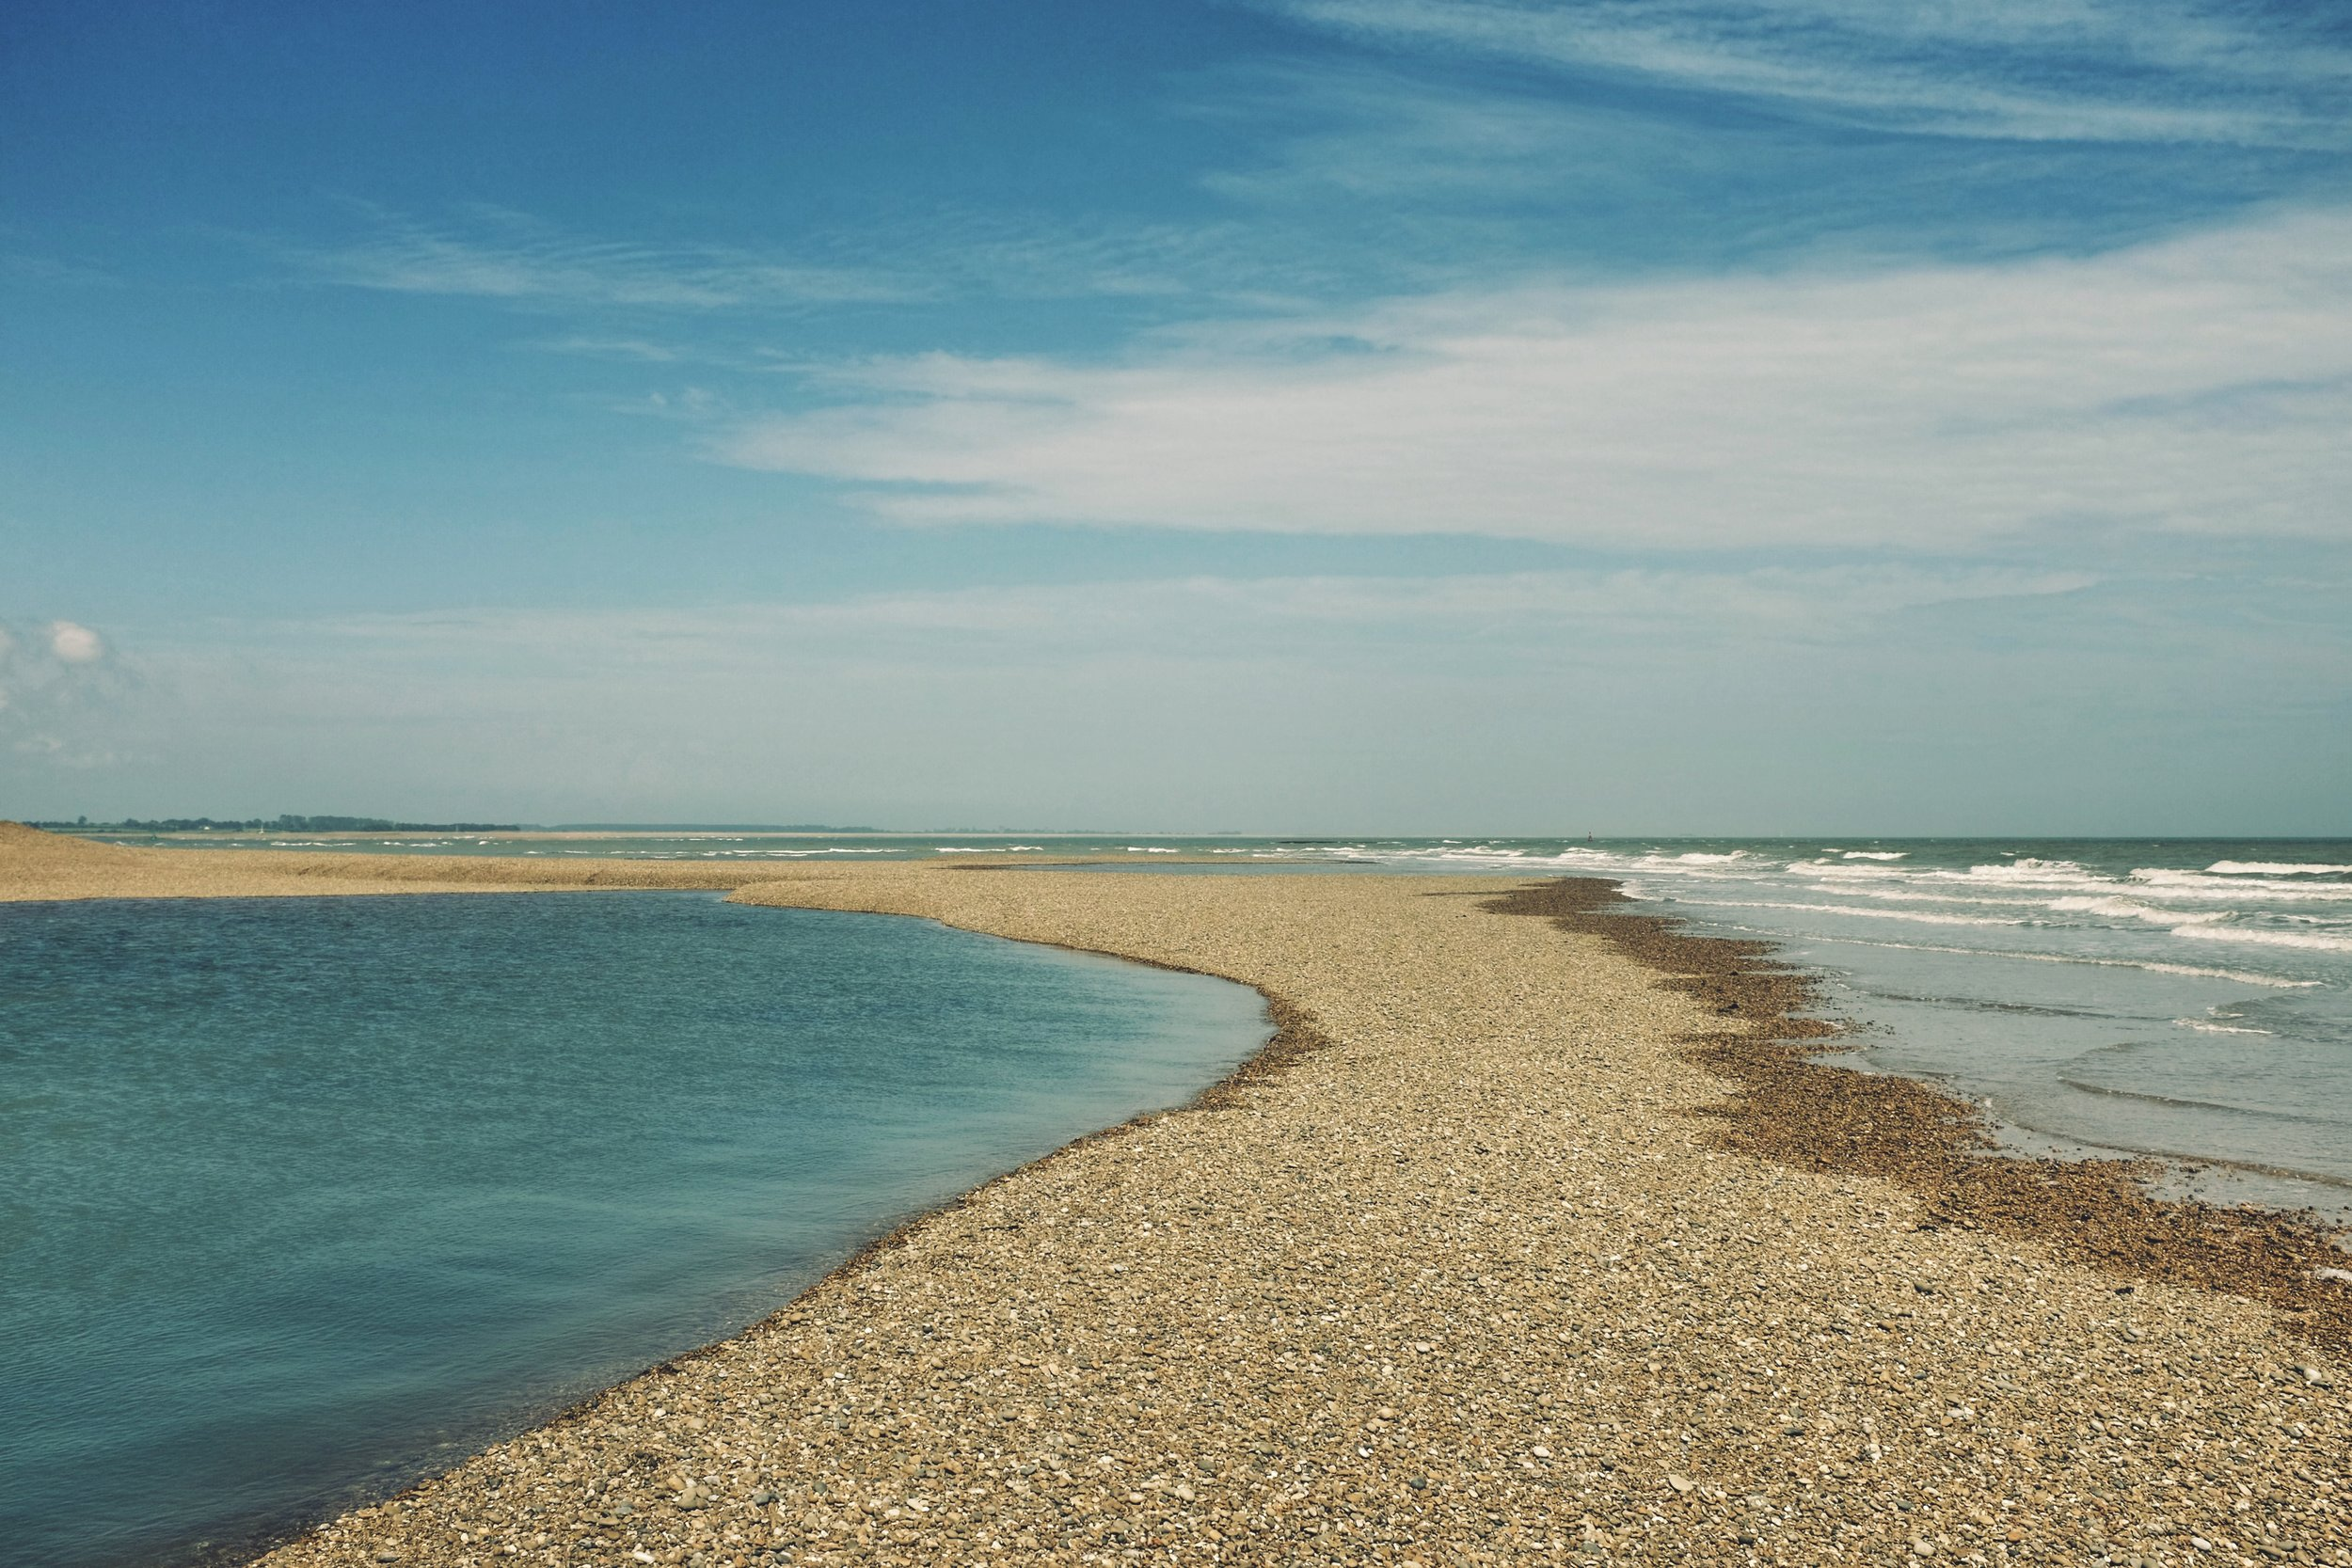 SHINGLE STREET - (10 miles from Woodbridge) is an isolated beach where you can see seals basking at the estuary entrance.No lifeguards